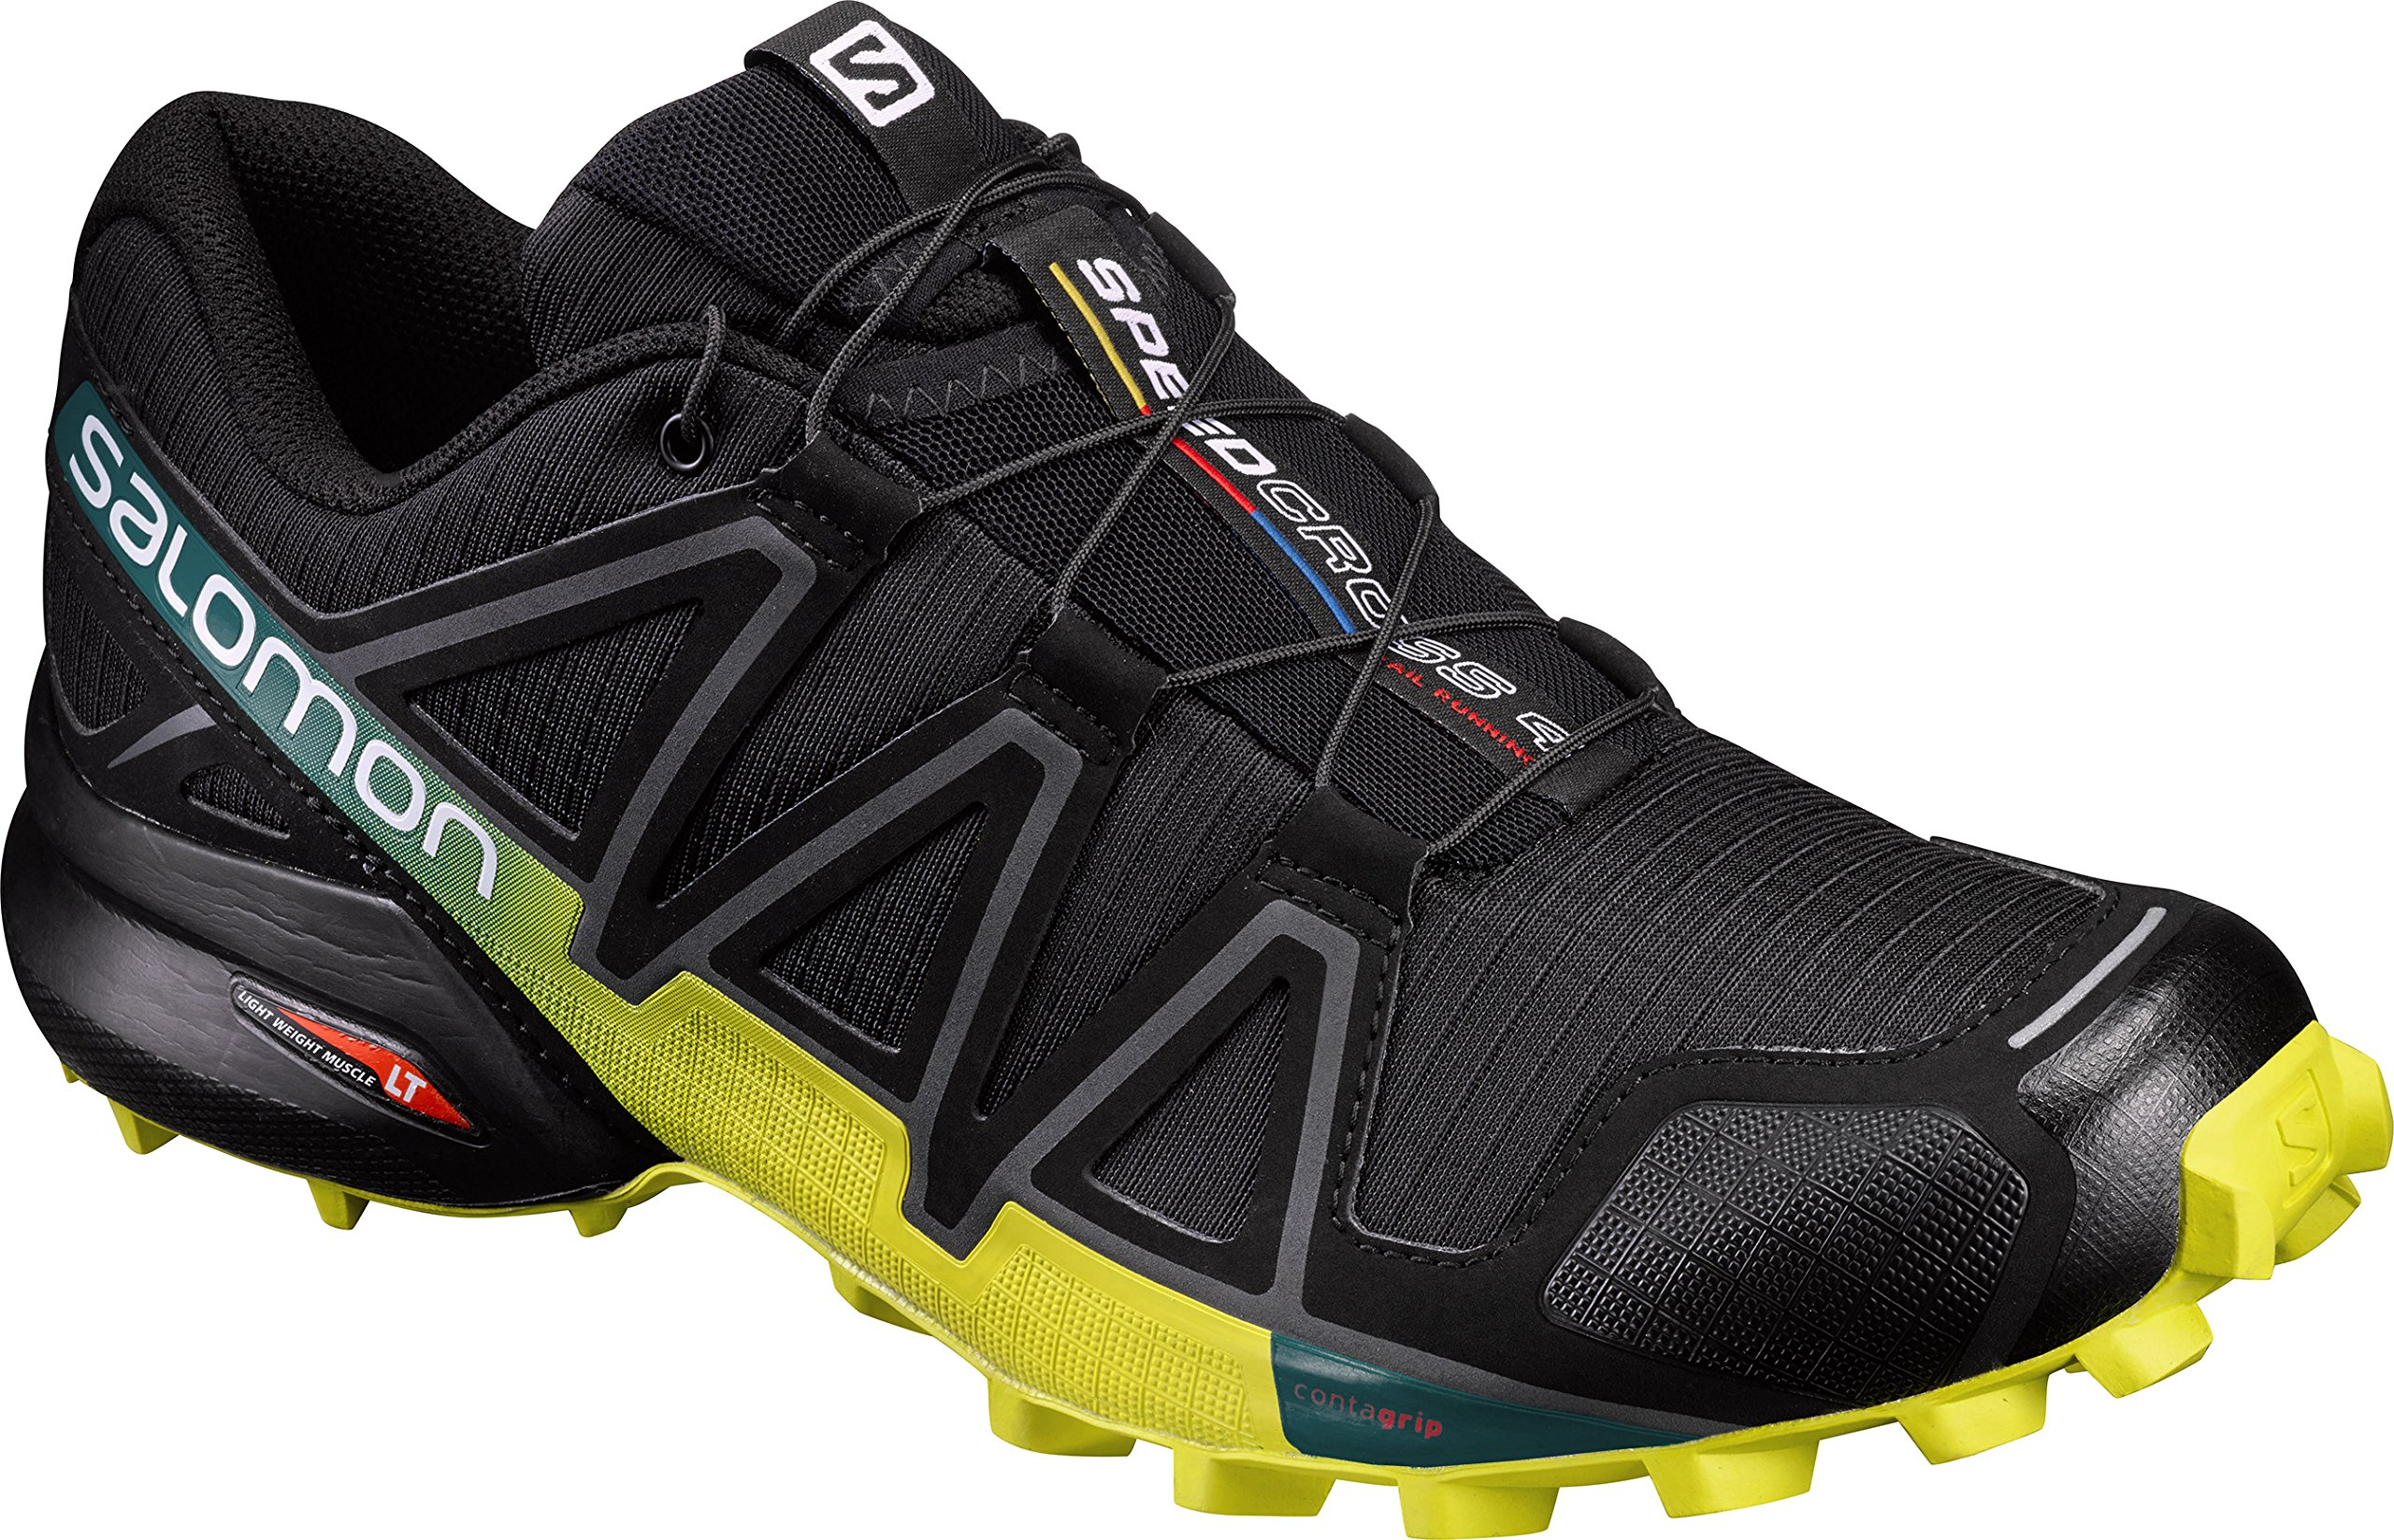 Salomon Men's Speedcross 4 Trail Runner, Black/Everglade/Sulphur, 9.5 M US by SALOMON